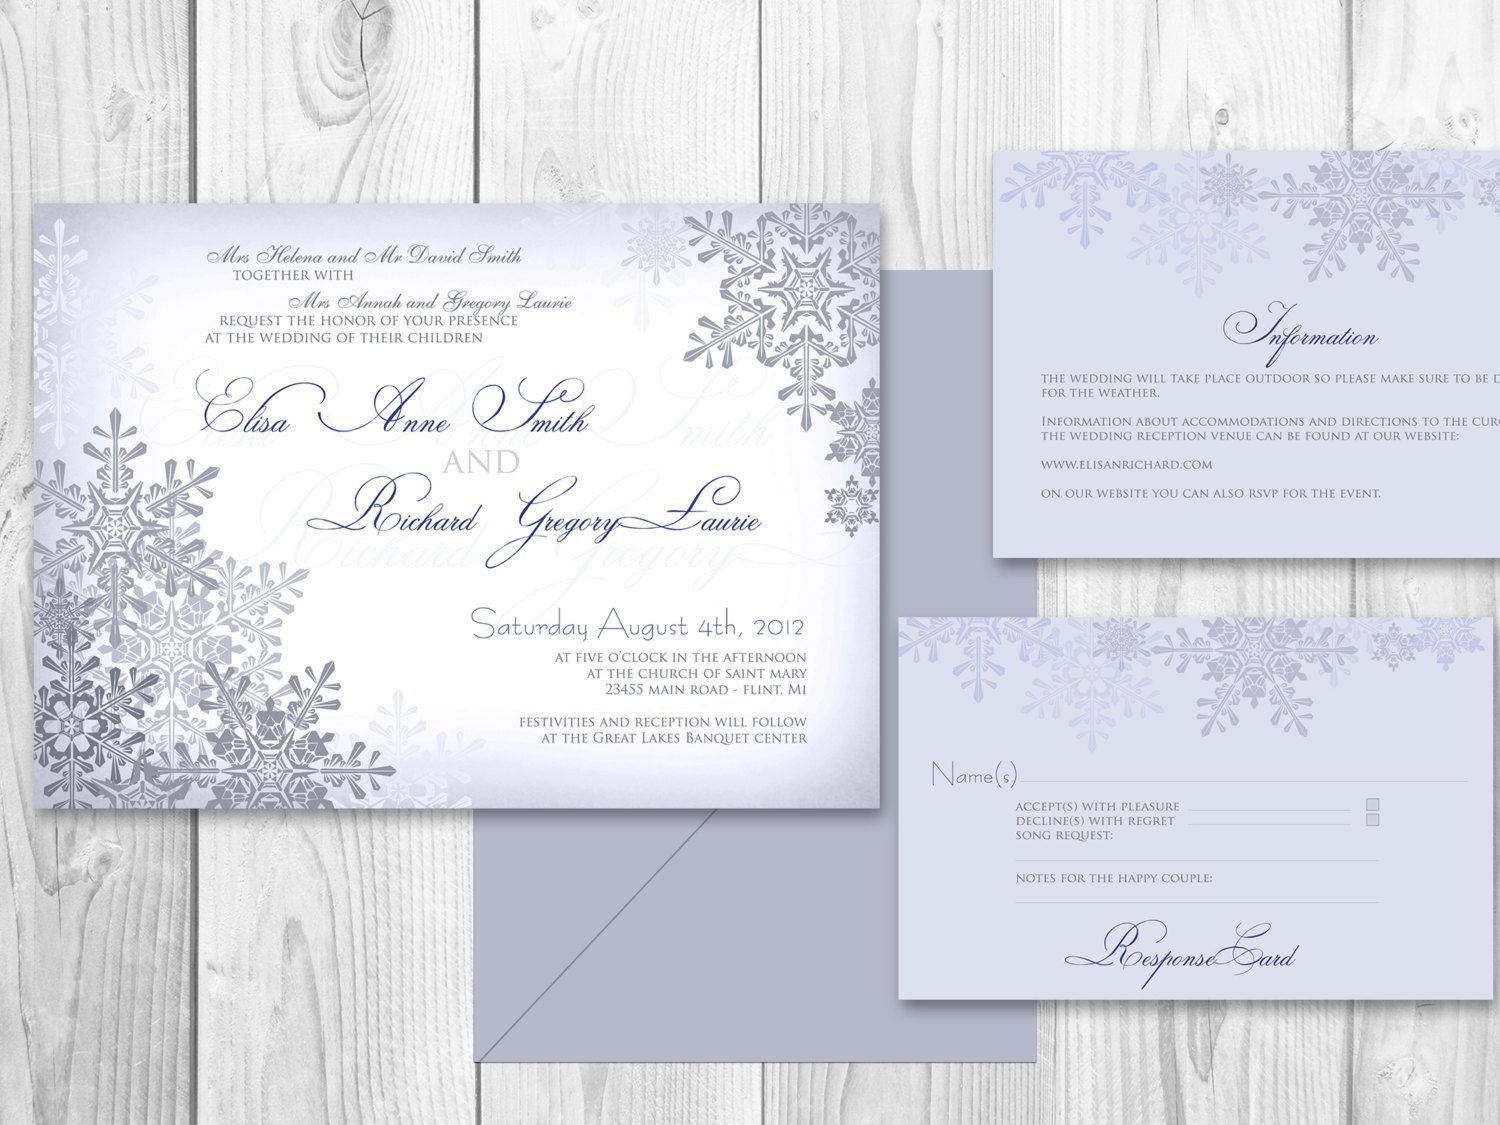 17 Best images about Winter Wedding Invitations on Pinterest ...